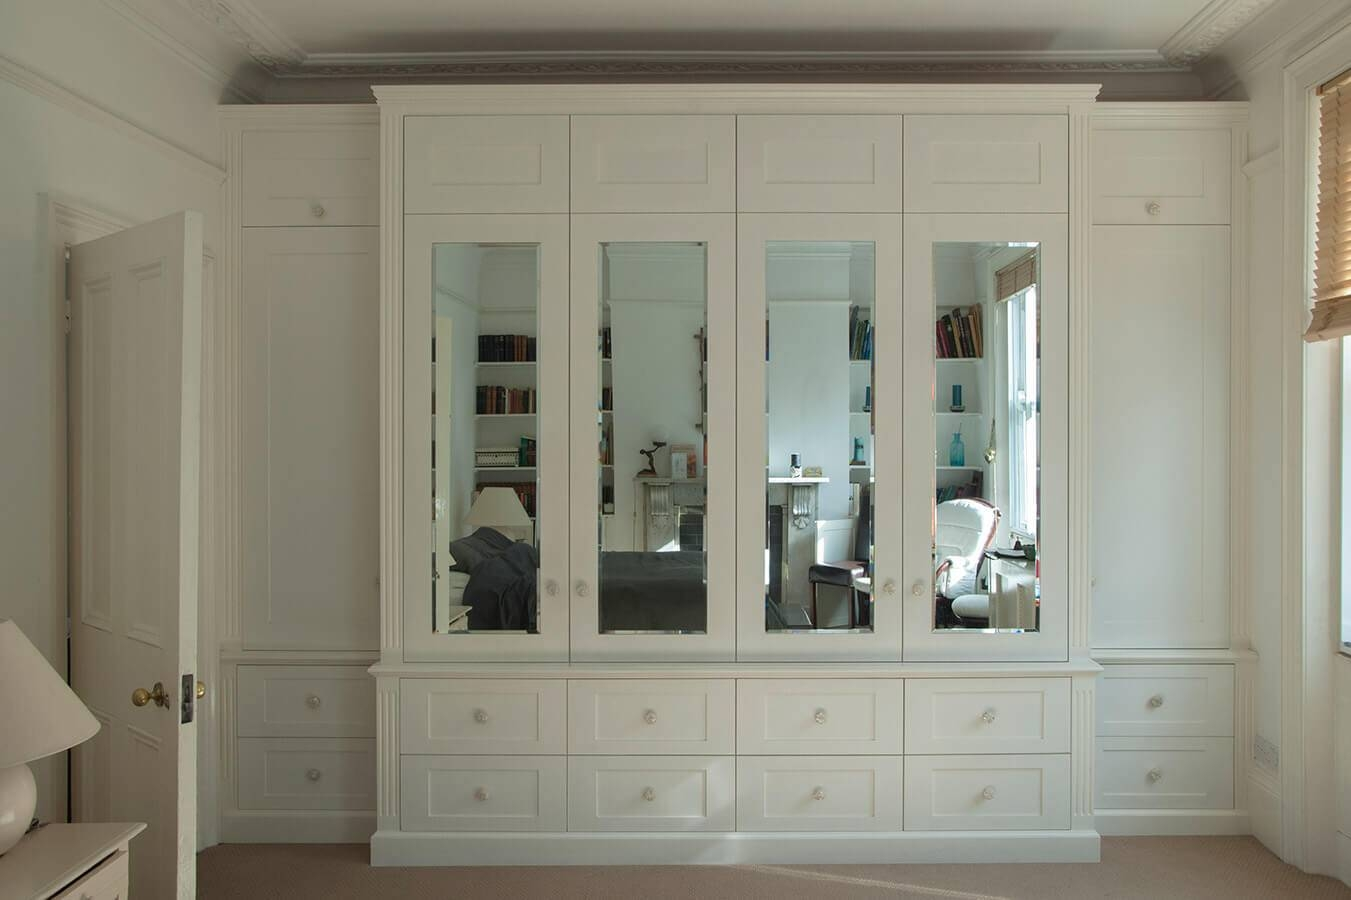 Fitted Bedrooms | Wardrobes, Beds And Chests Of Drawers With Regard To Drawers For Fitted Wardrobes (View 3 of 30)